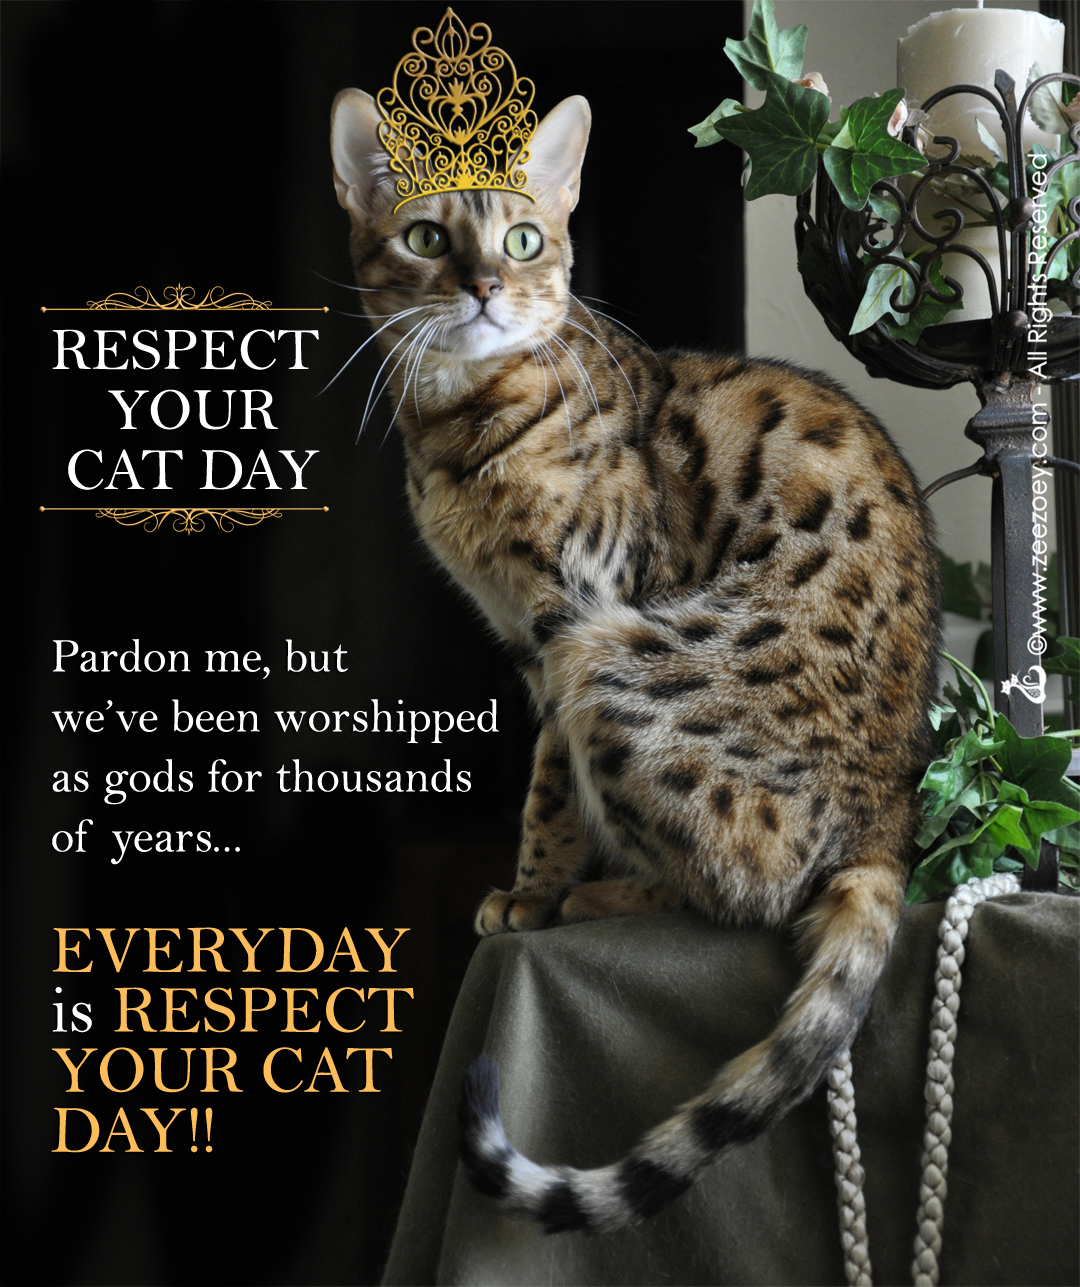 Ways to show your cat you respect them for Respect Your Cat Day